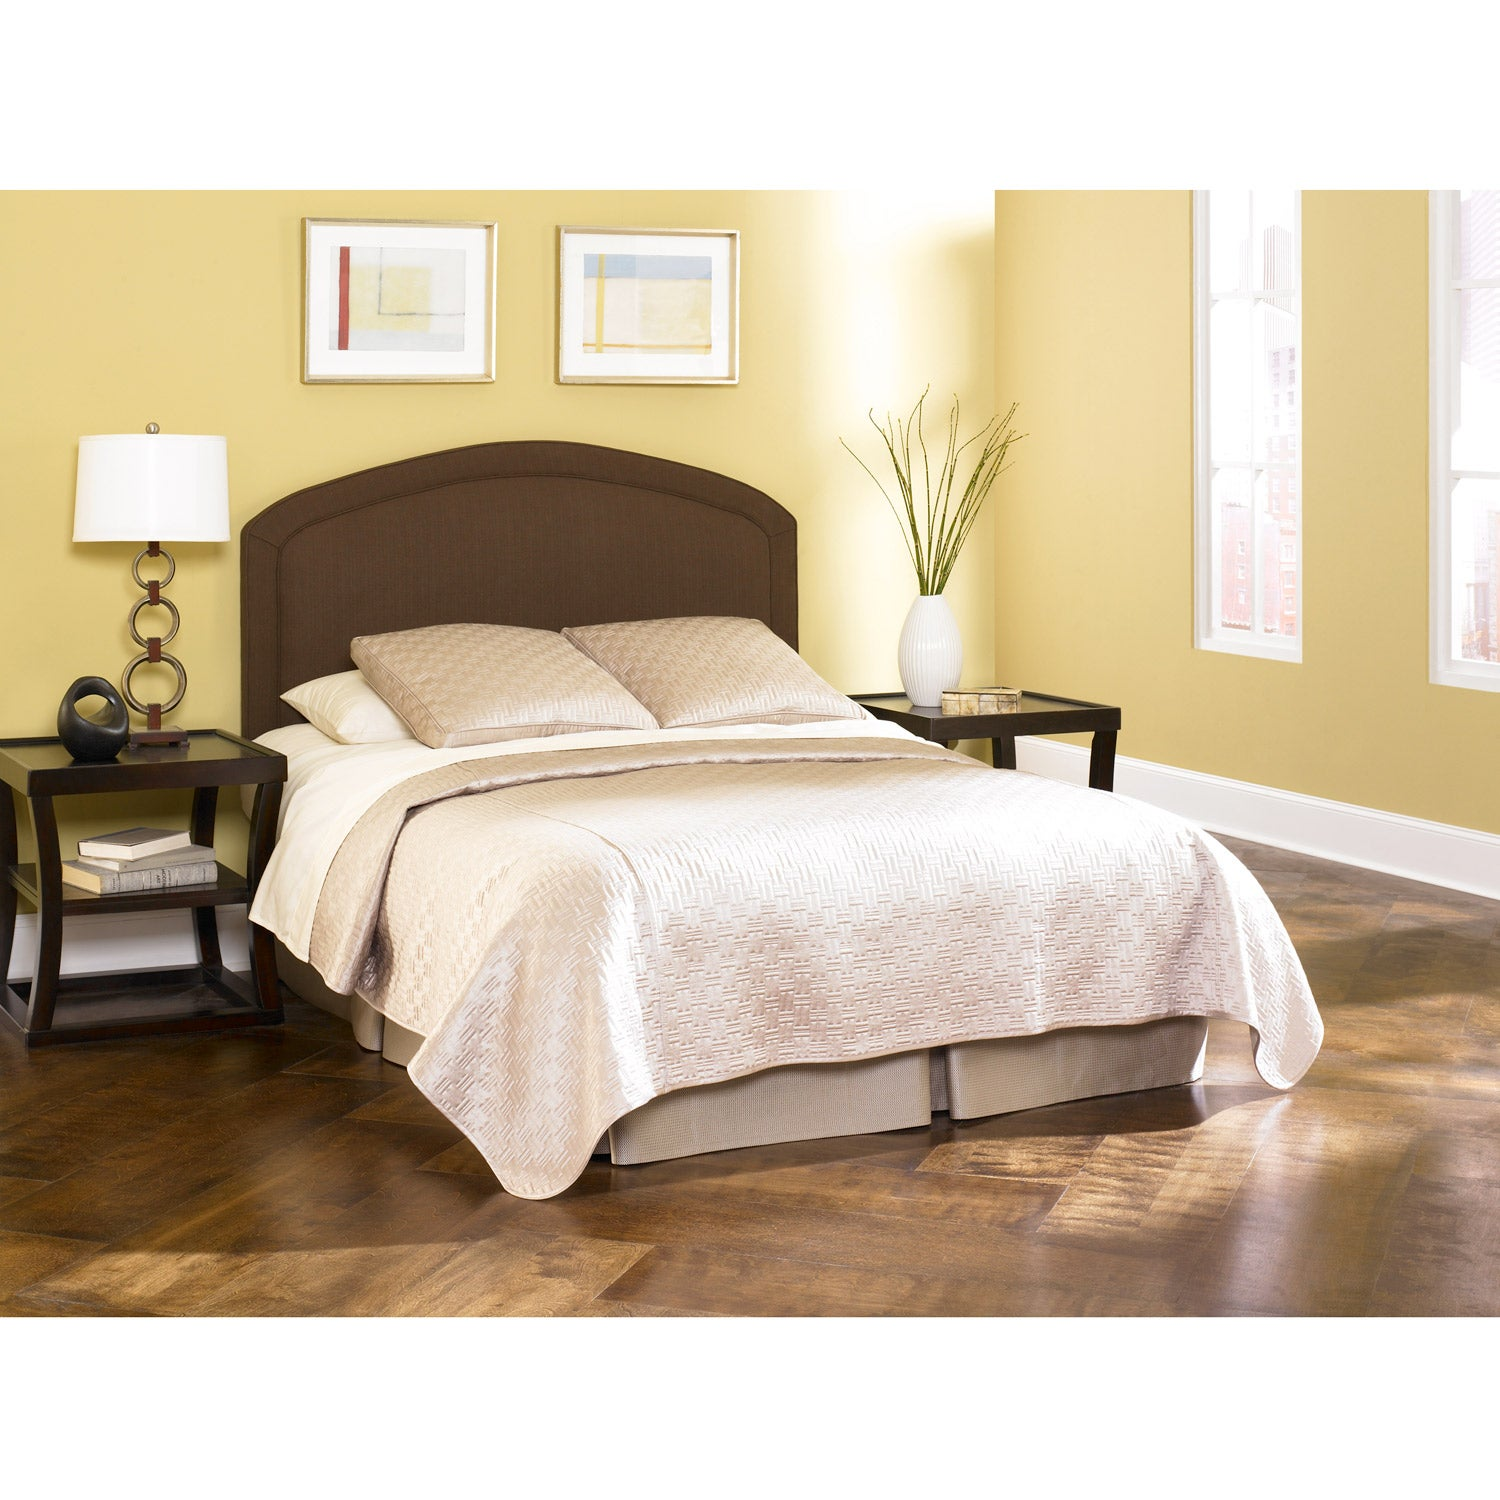 Cherbourg deep chocolate upholstered king cal king size for King size headboard